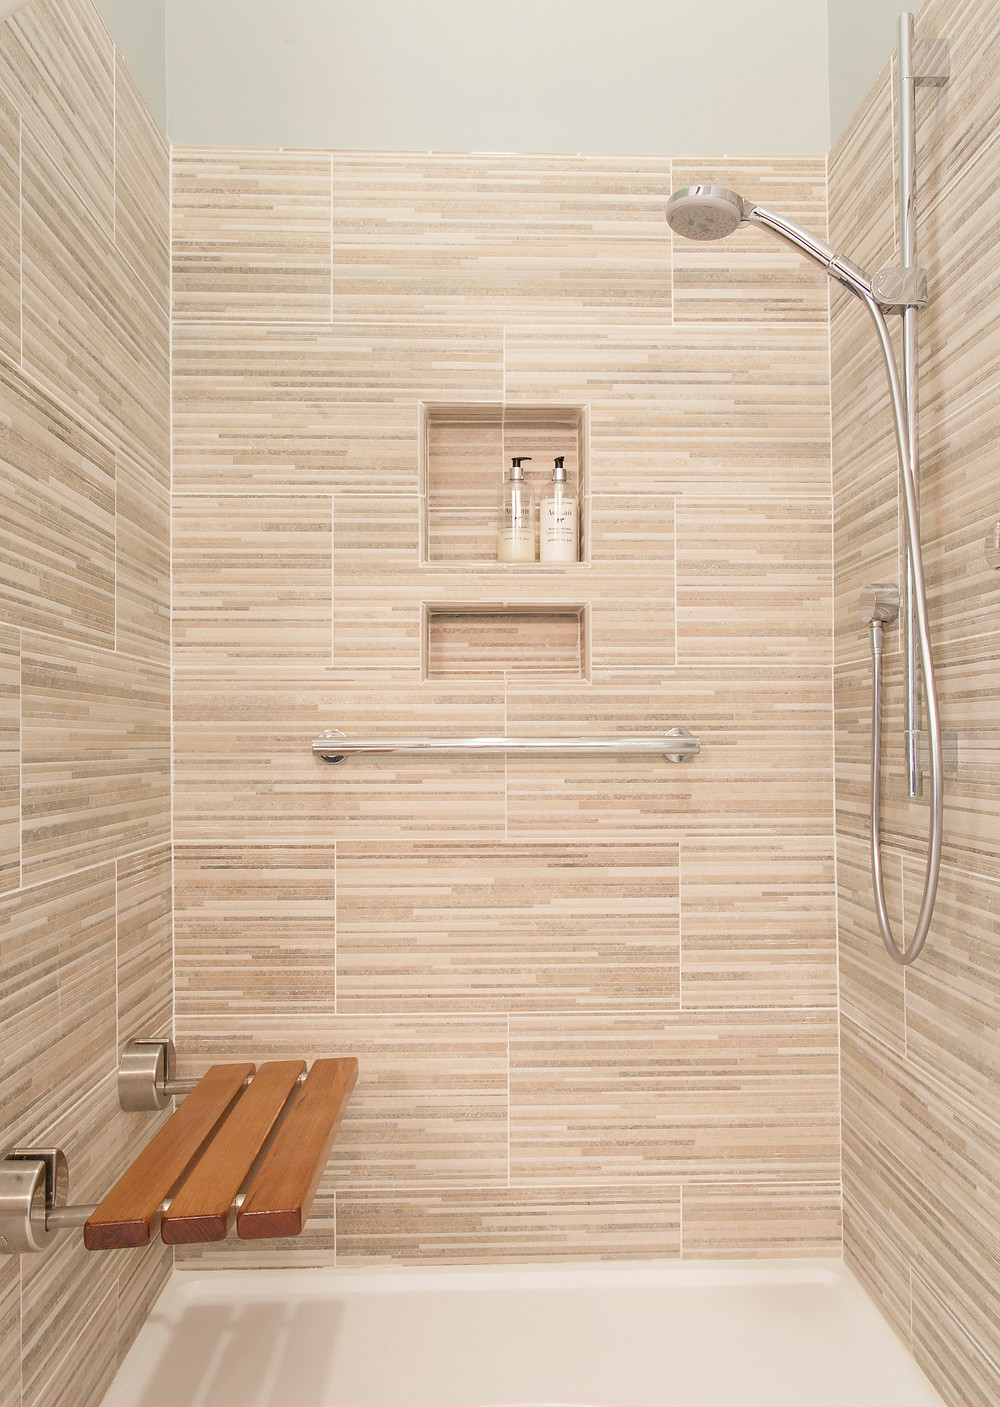 Shower with fold-down shower seat